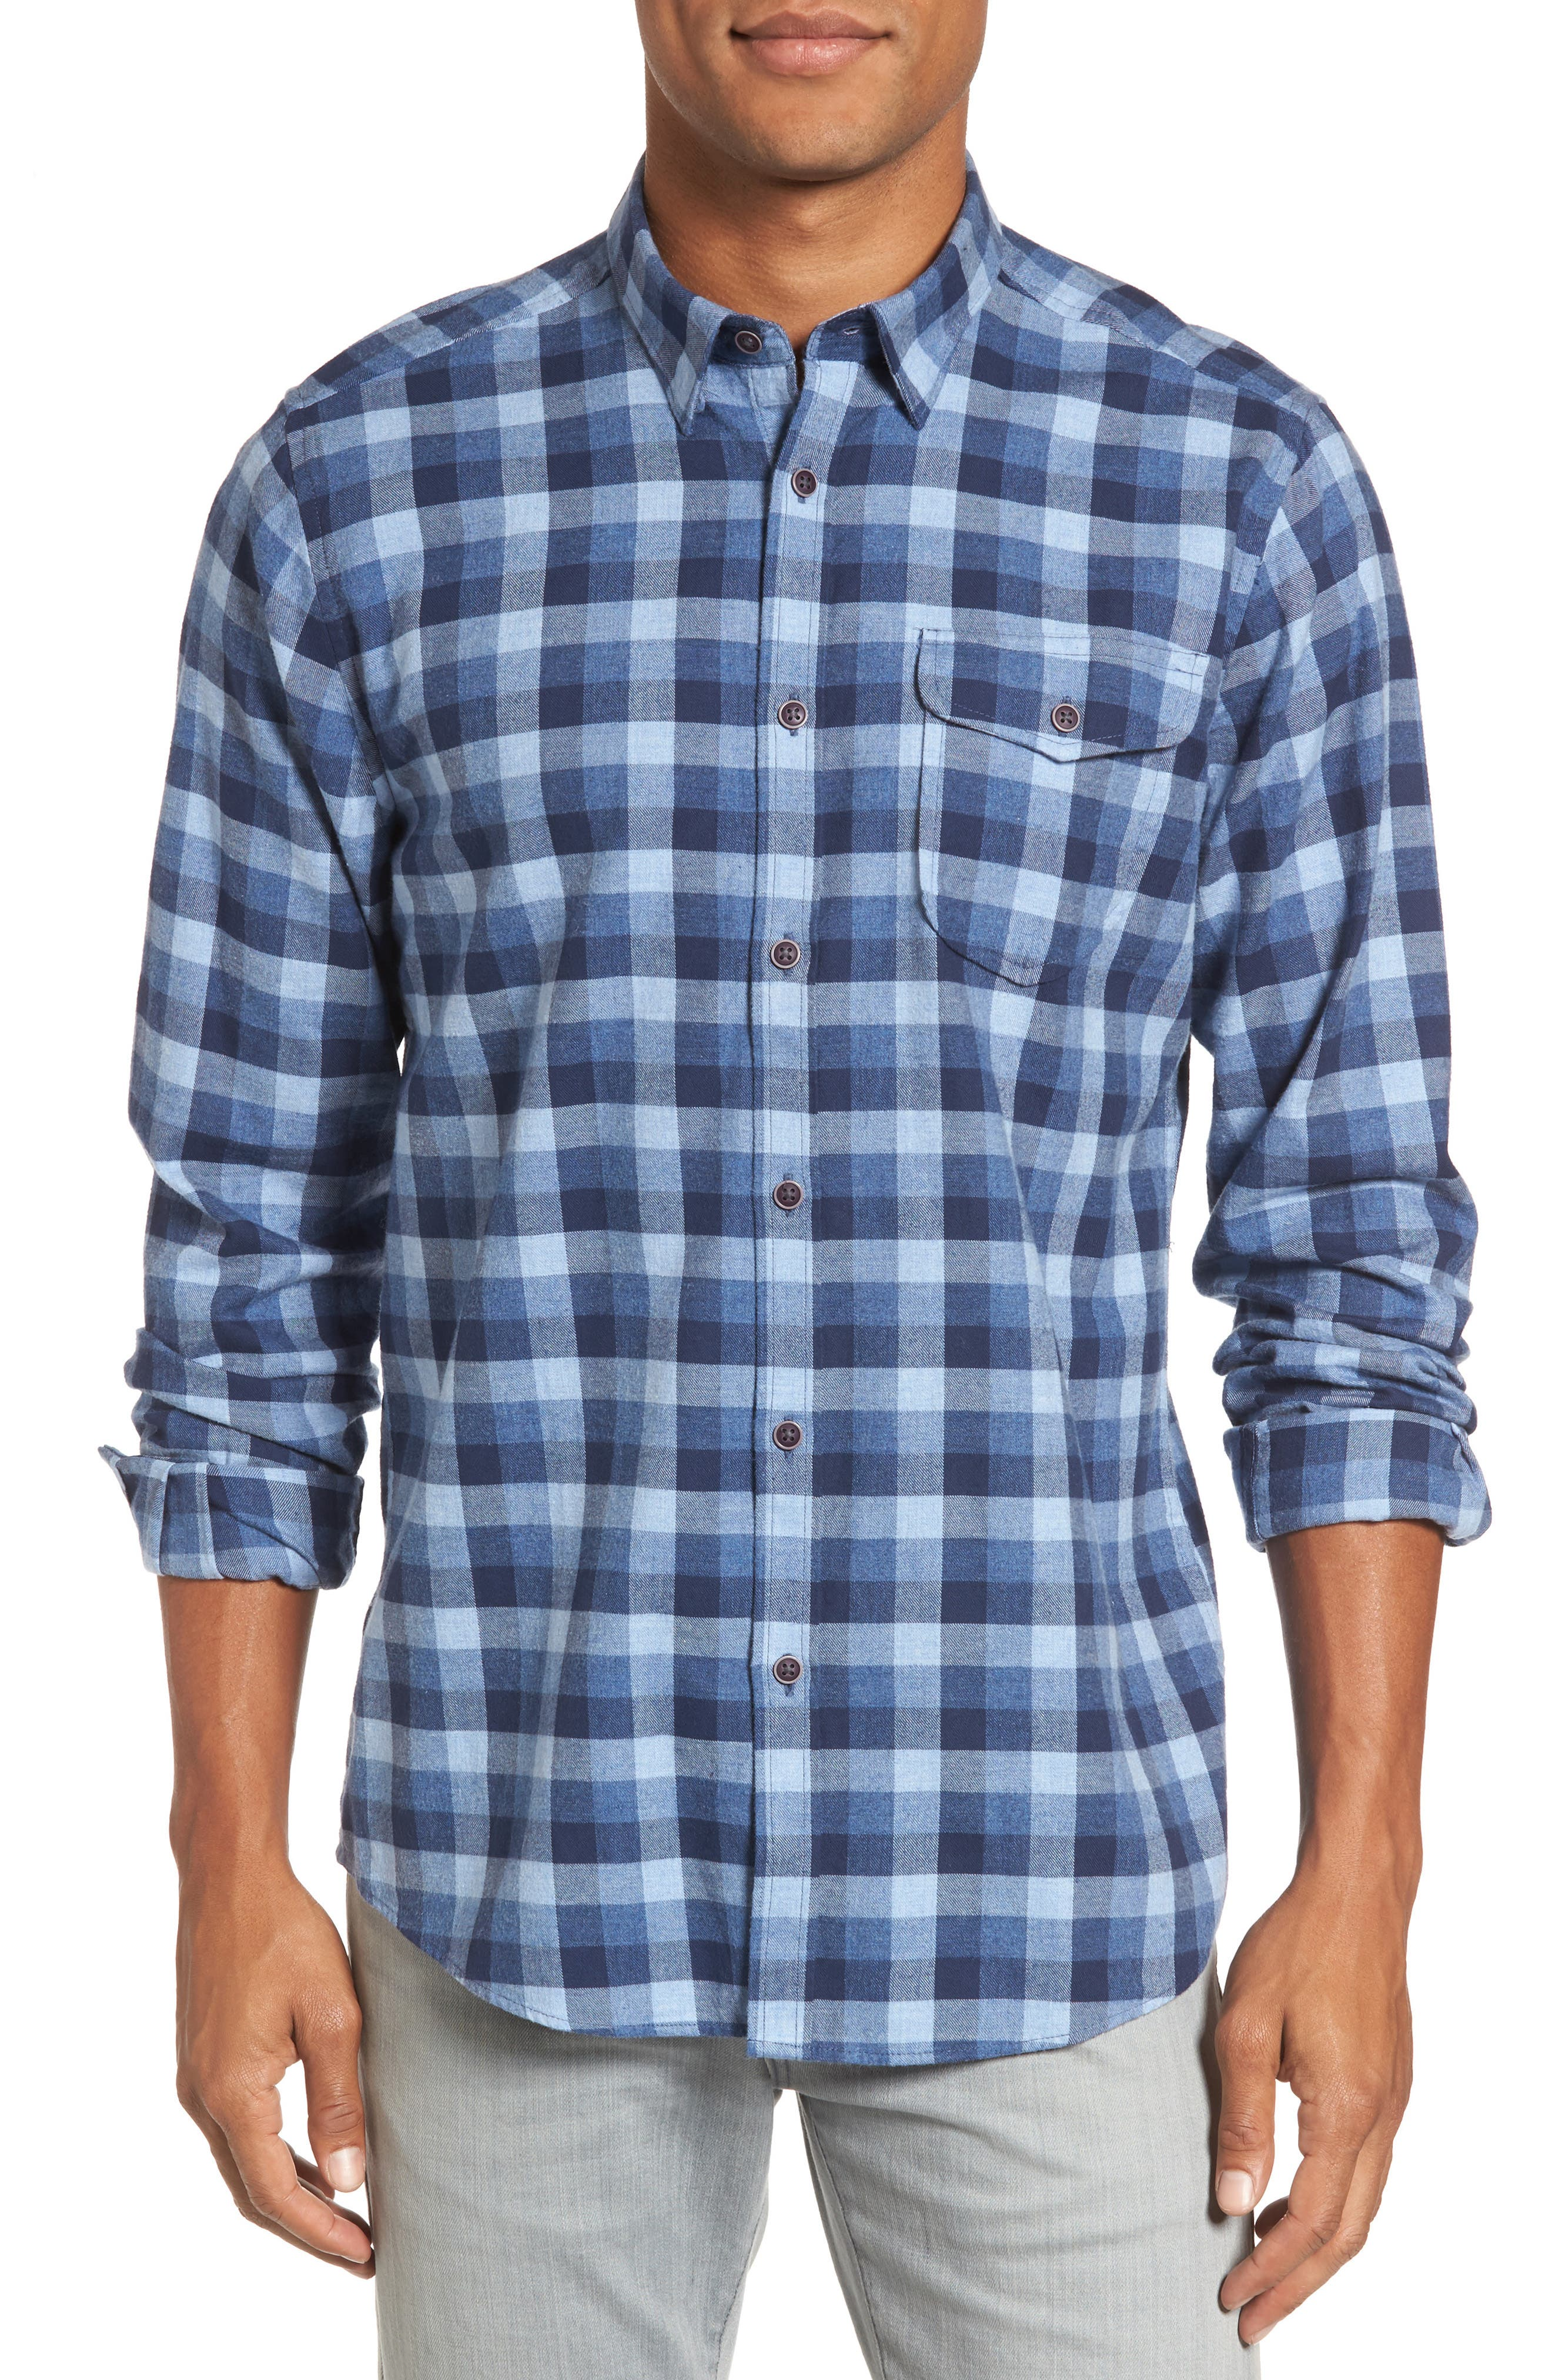 Alternate Image 1 Selected - Barbour Grill Regular Fit Check Sport Shirt